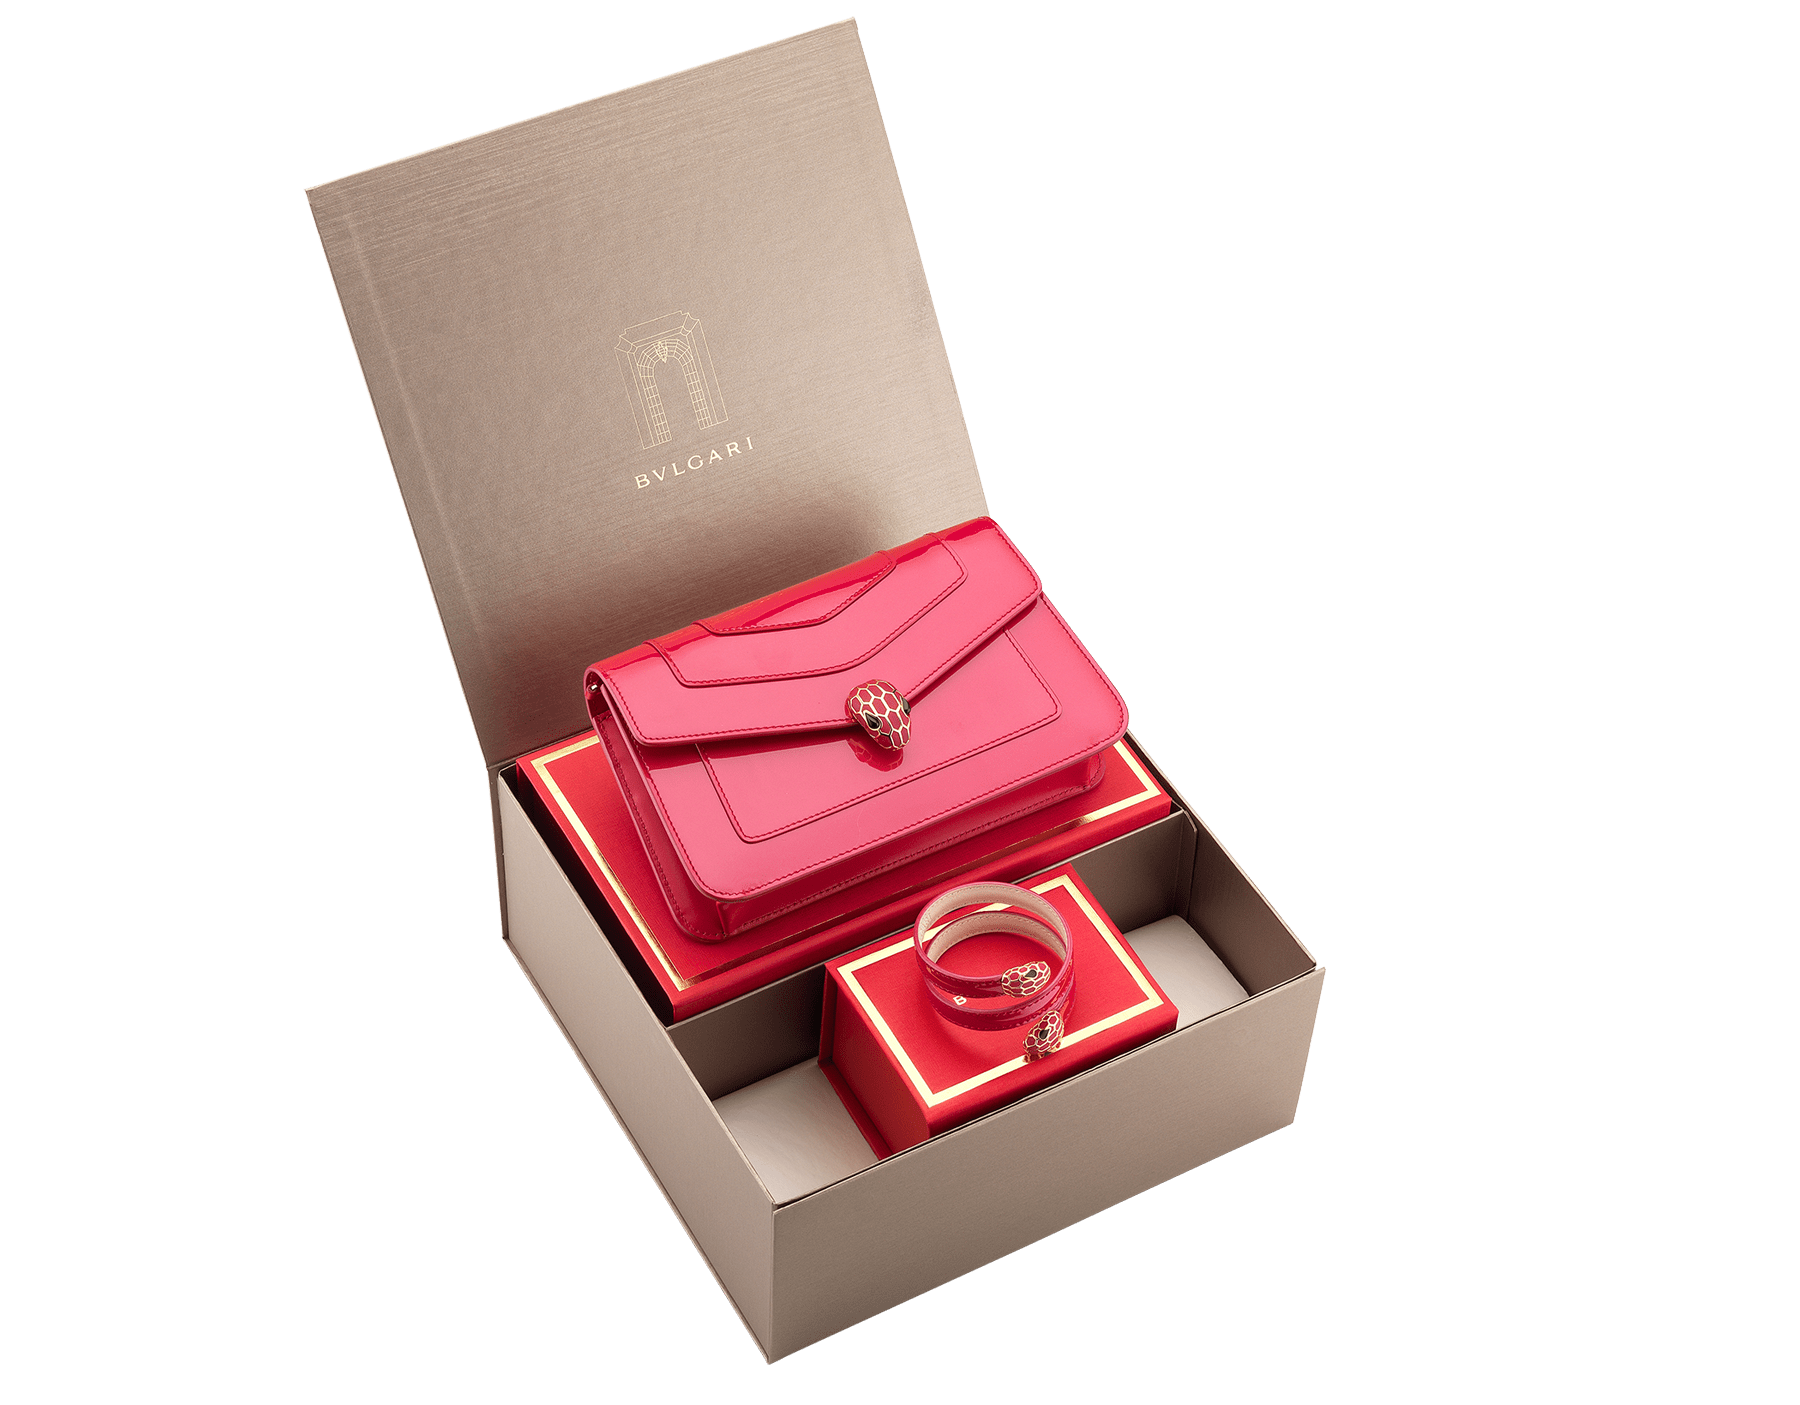 An elegant set of Bvlgari creations for a special Lunar New Year gift. women-gift-set-chain-wallet-and-bracelet image 1